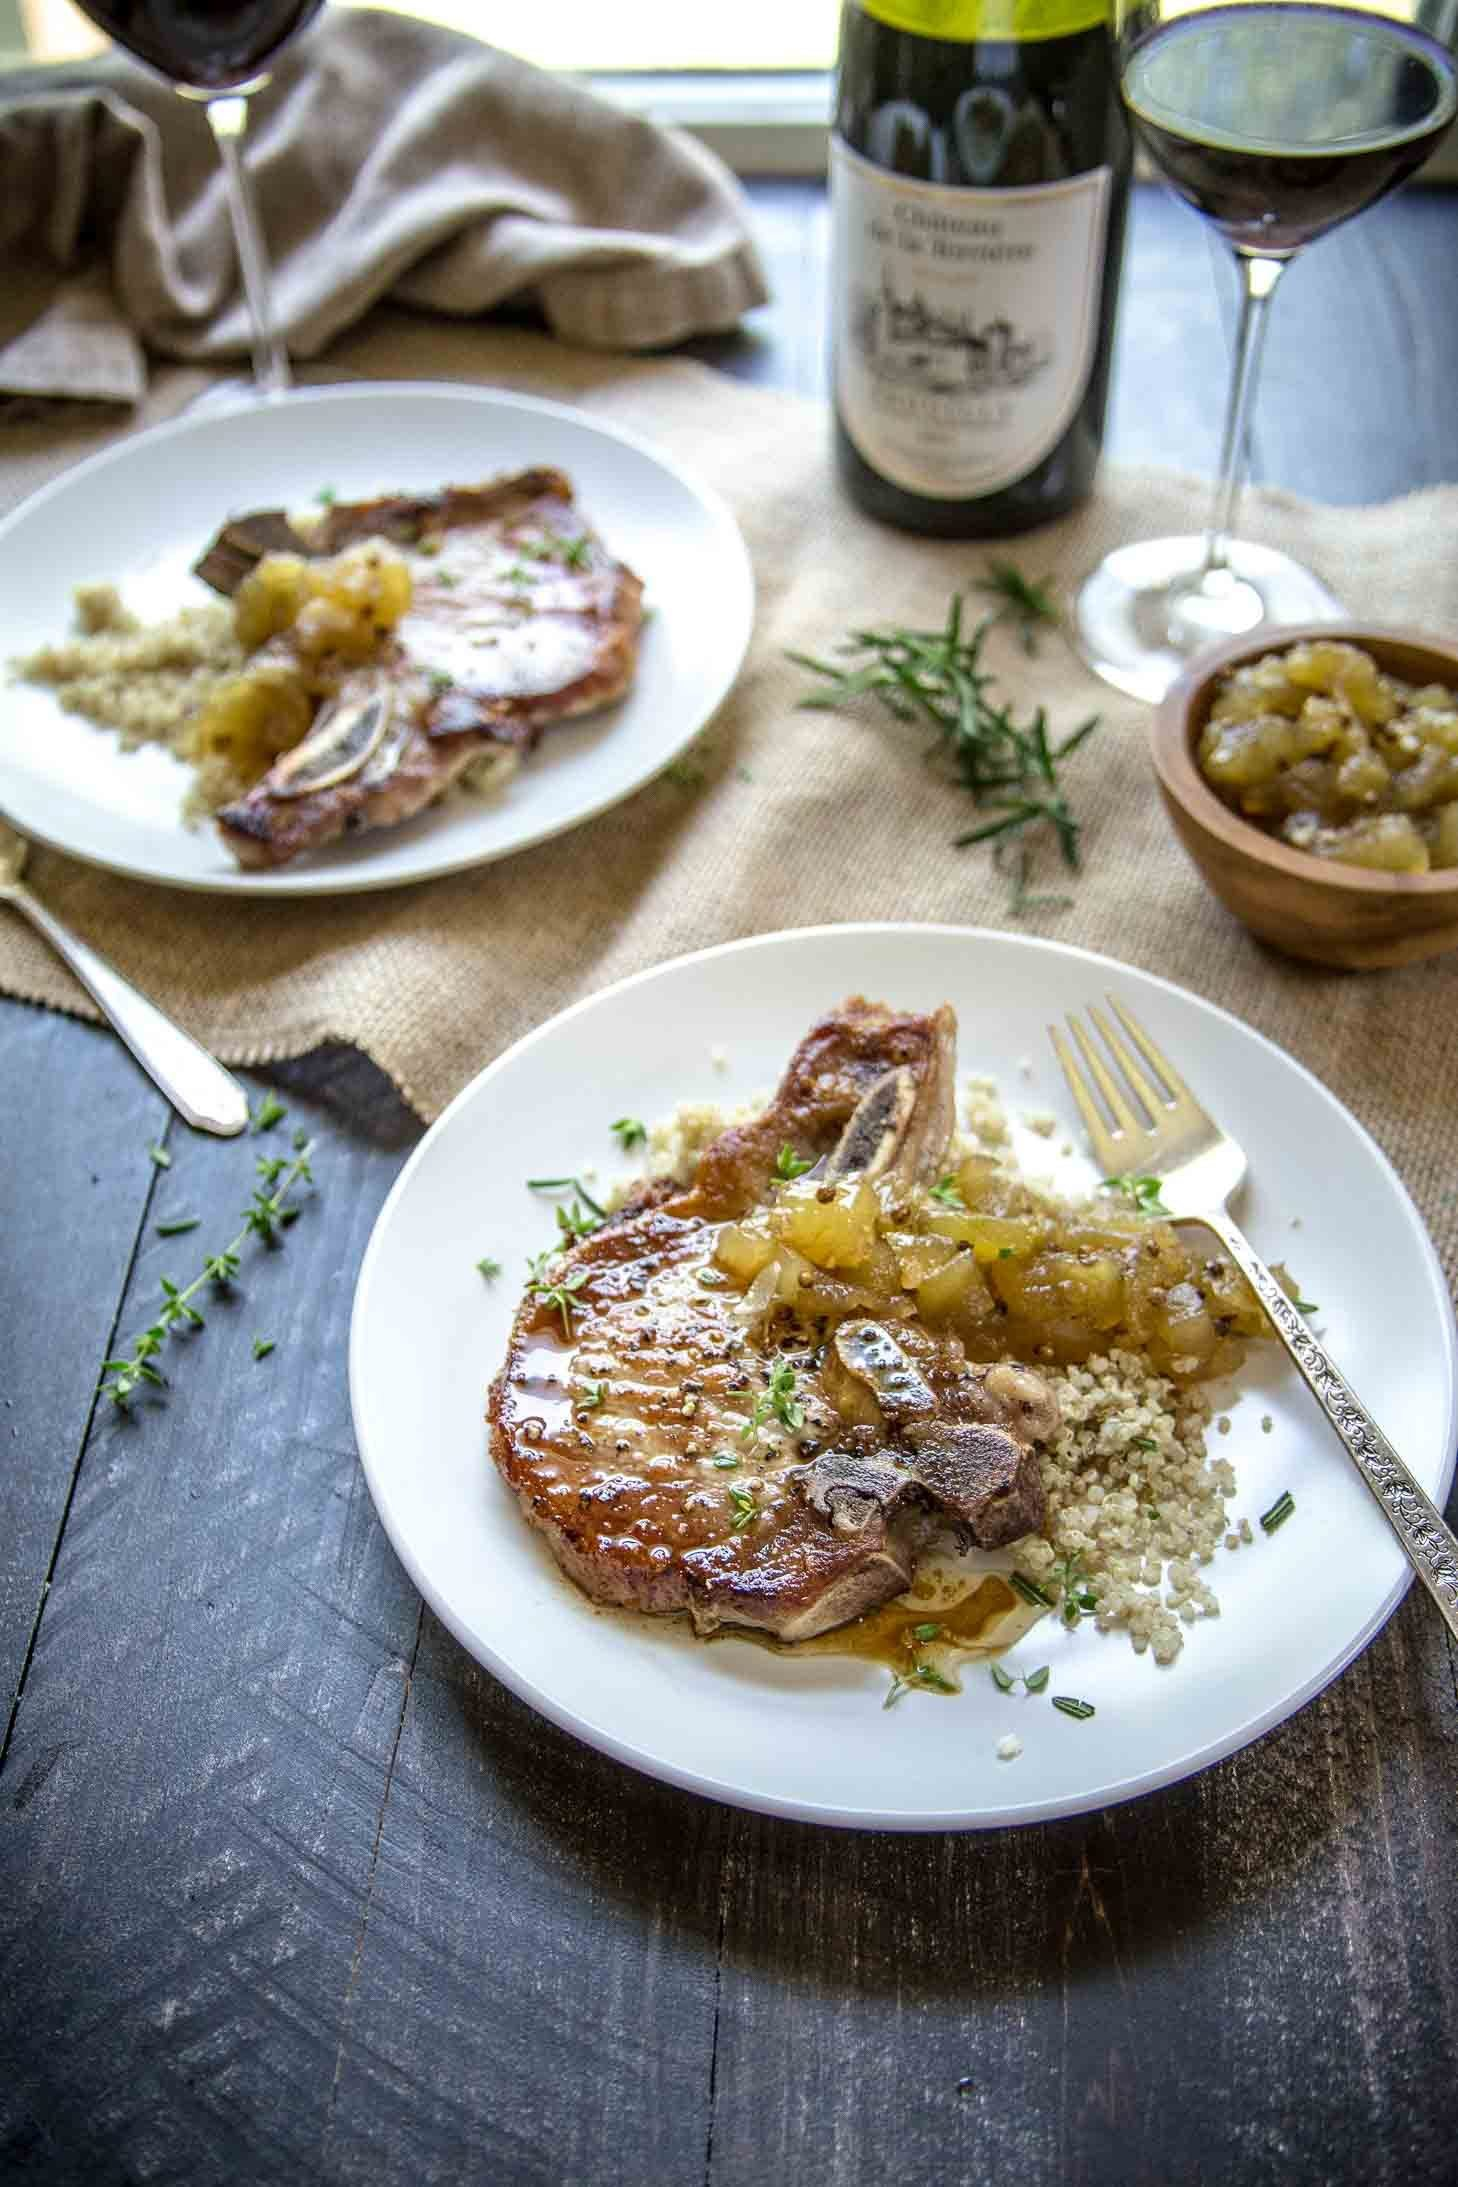 Apple Chutney and Herb Pork Chops with Beaujolais Wine